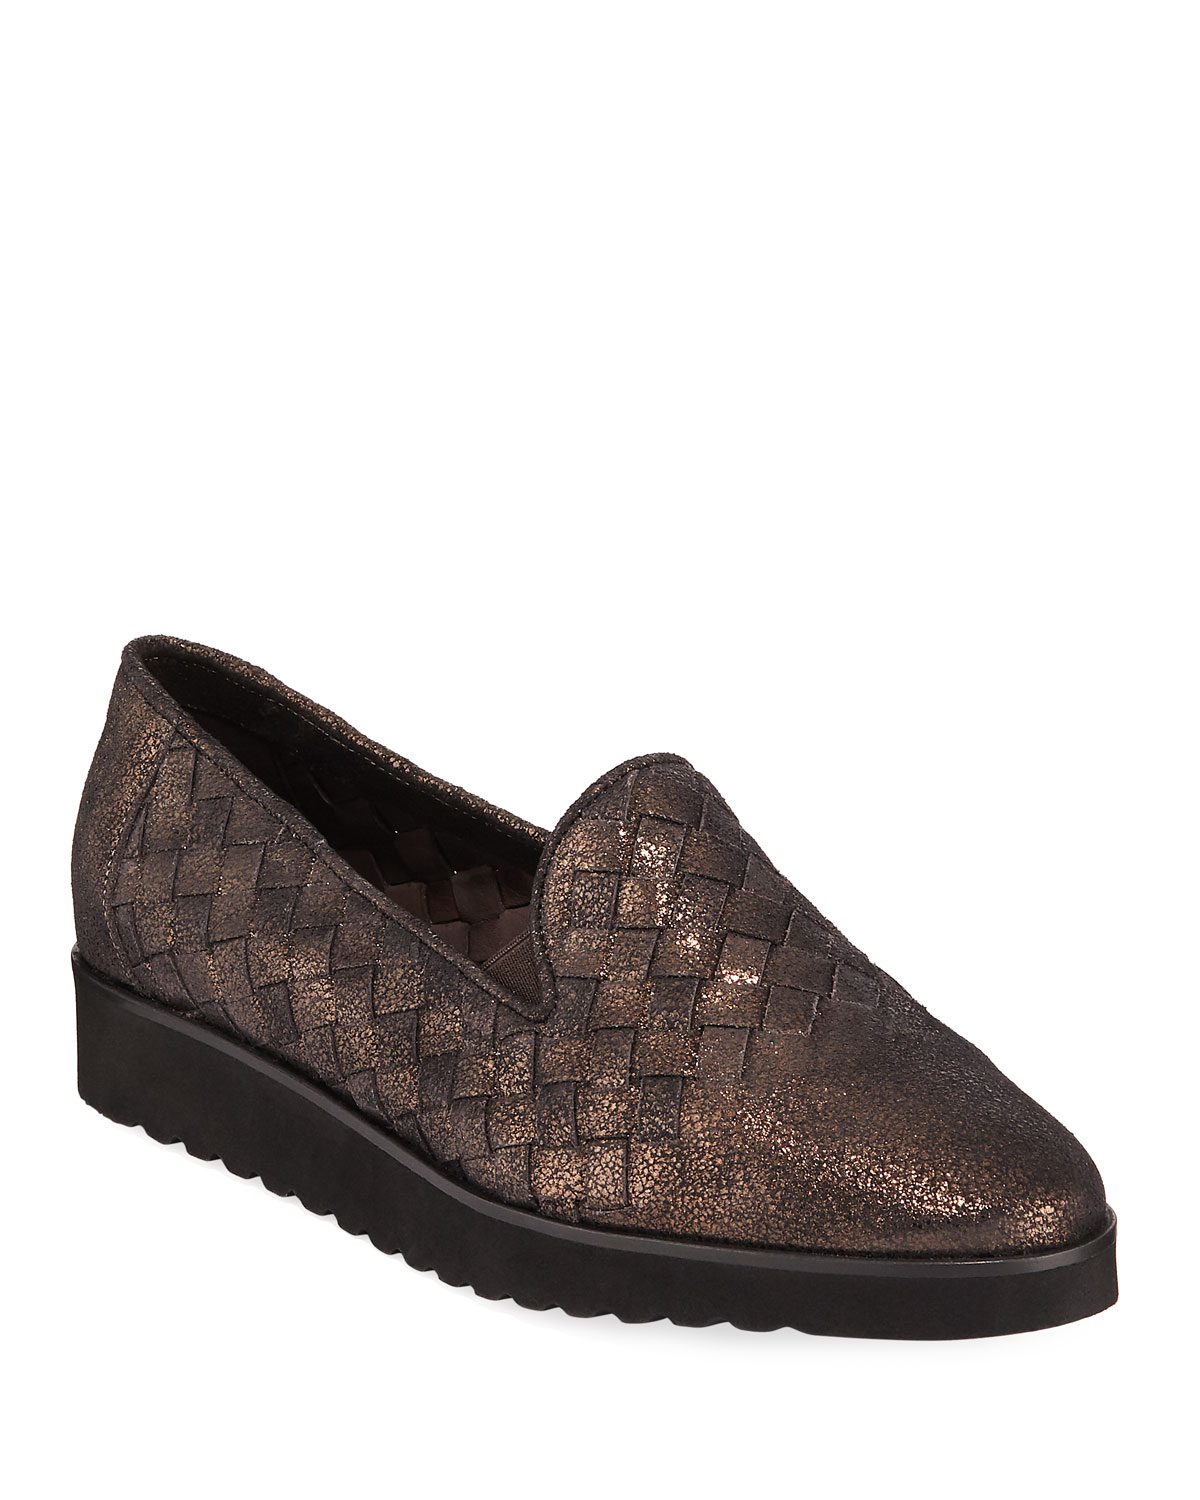 Naia Iconic Woven Metallic Leather Loafers, Brown